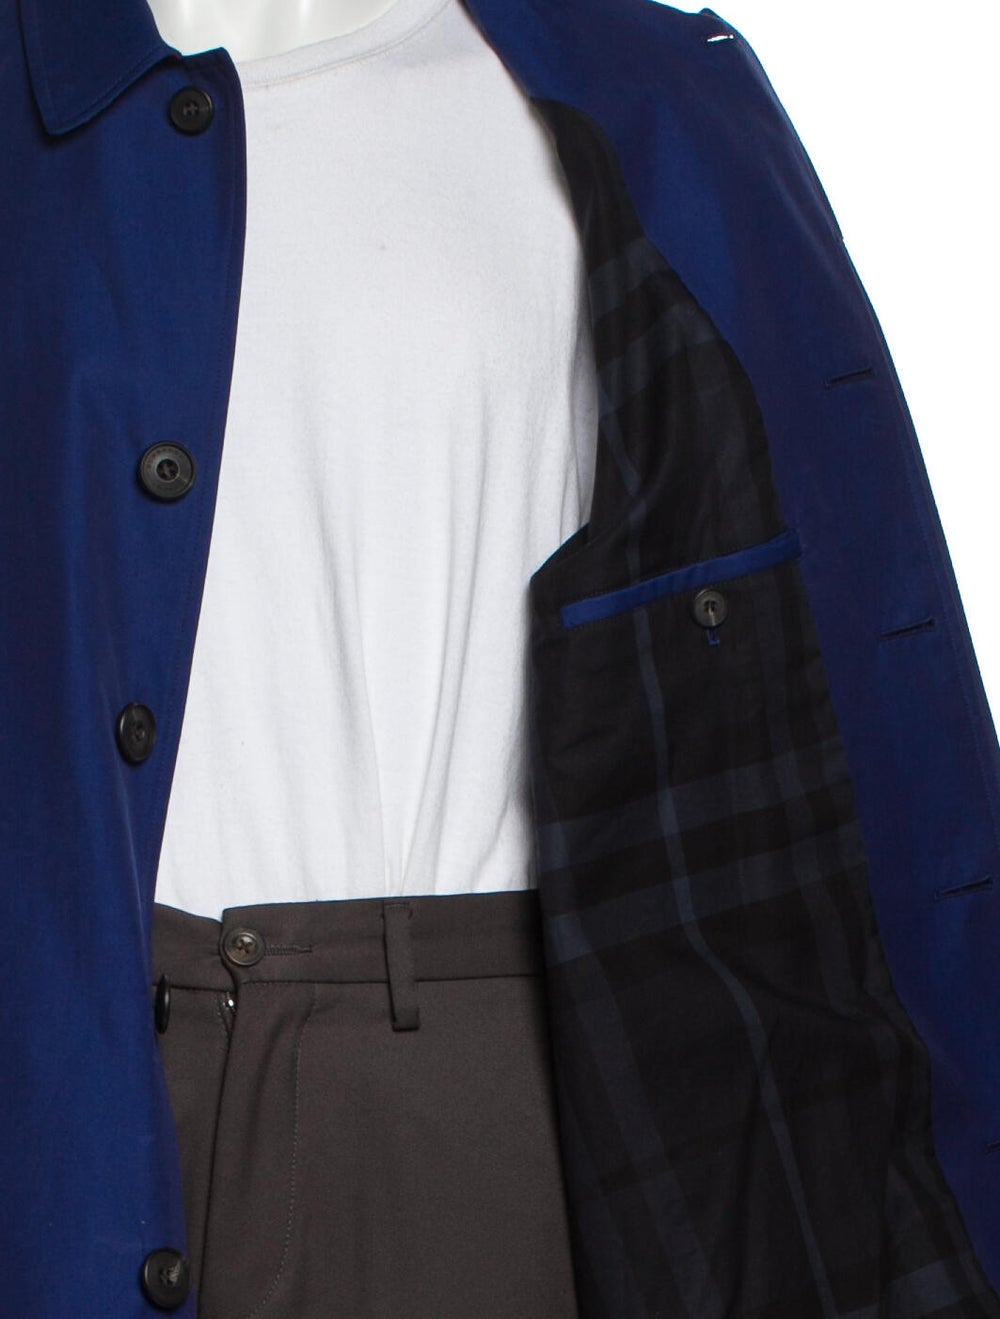 Burberry Trench Coat Blue - image 4